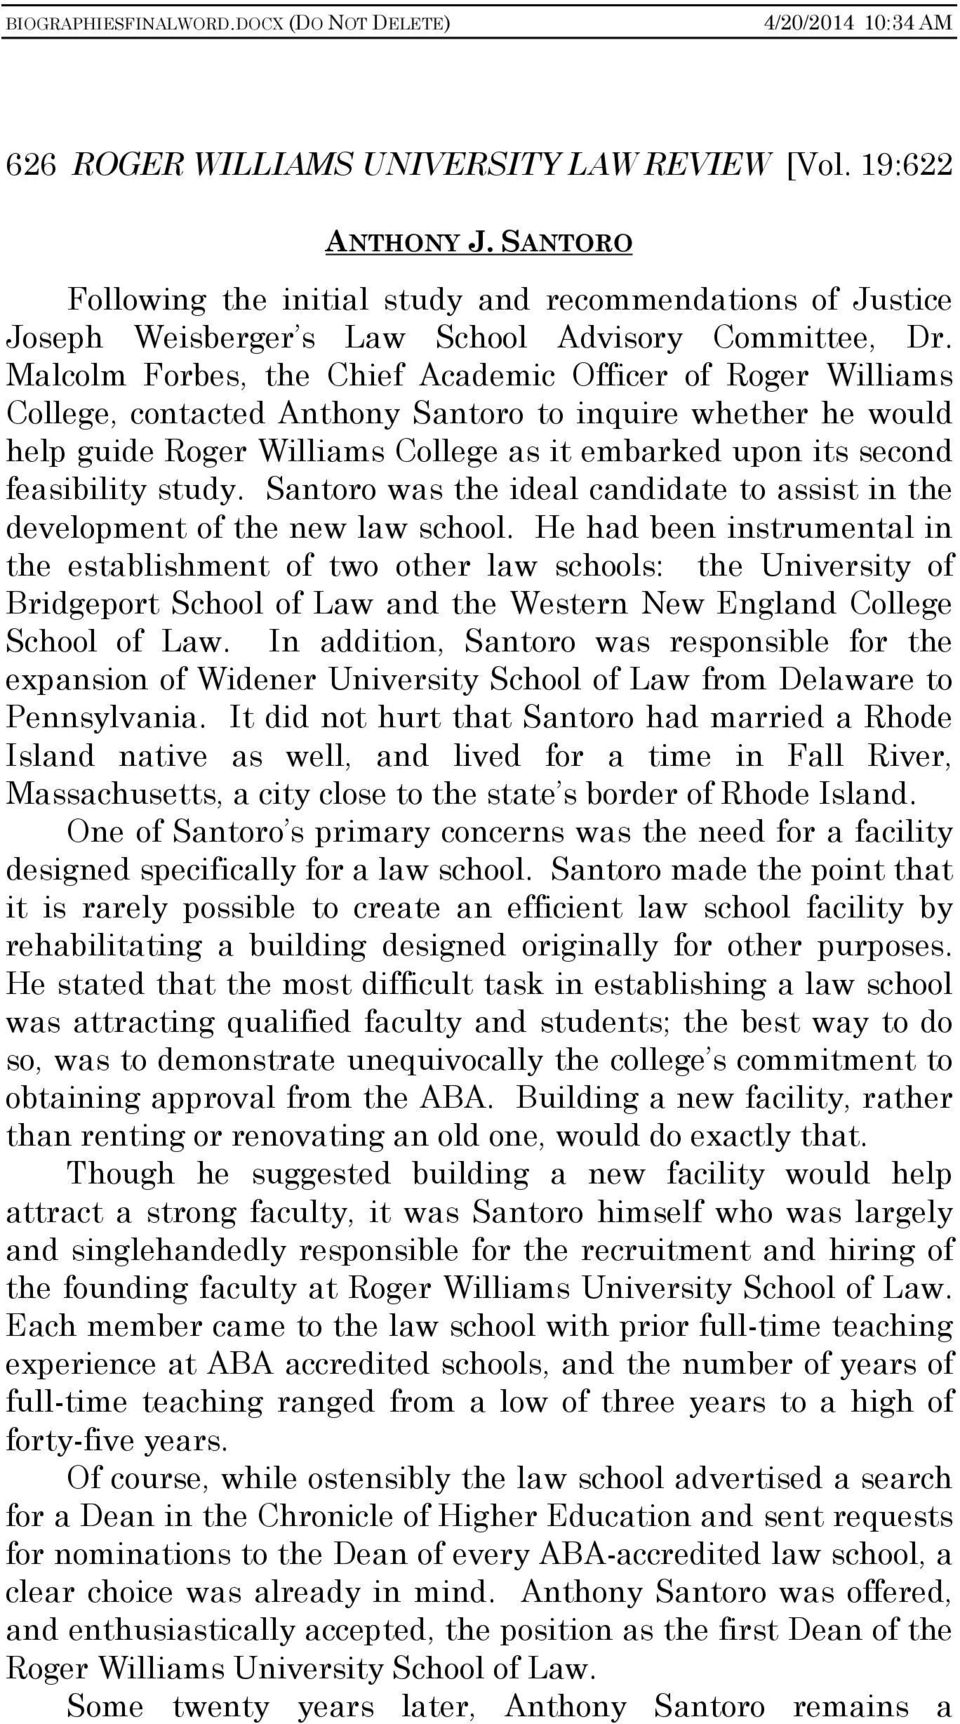 feasibility study. Santoro was the ideal candidate to assist in the development of the new law school.